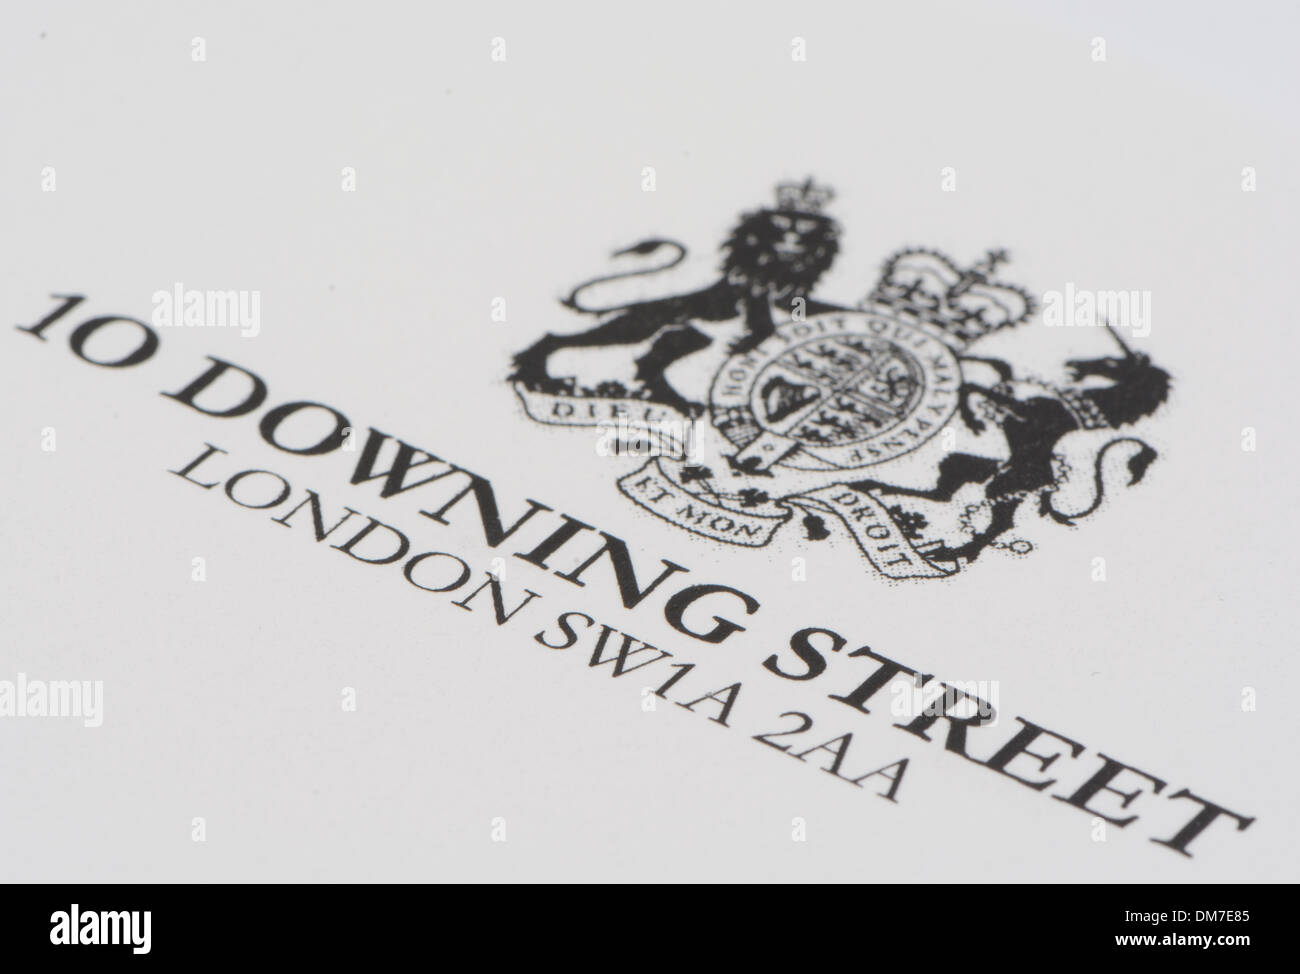 10 downing street letterheaded paper stock photo  royalty